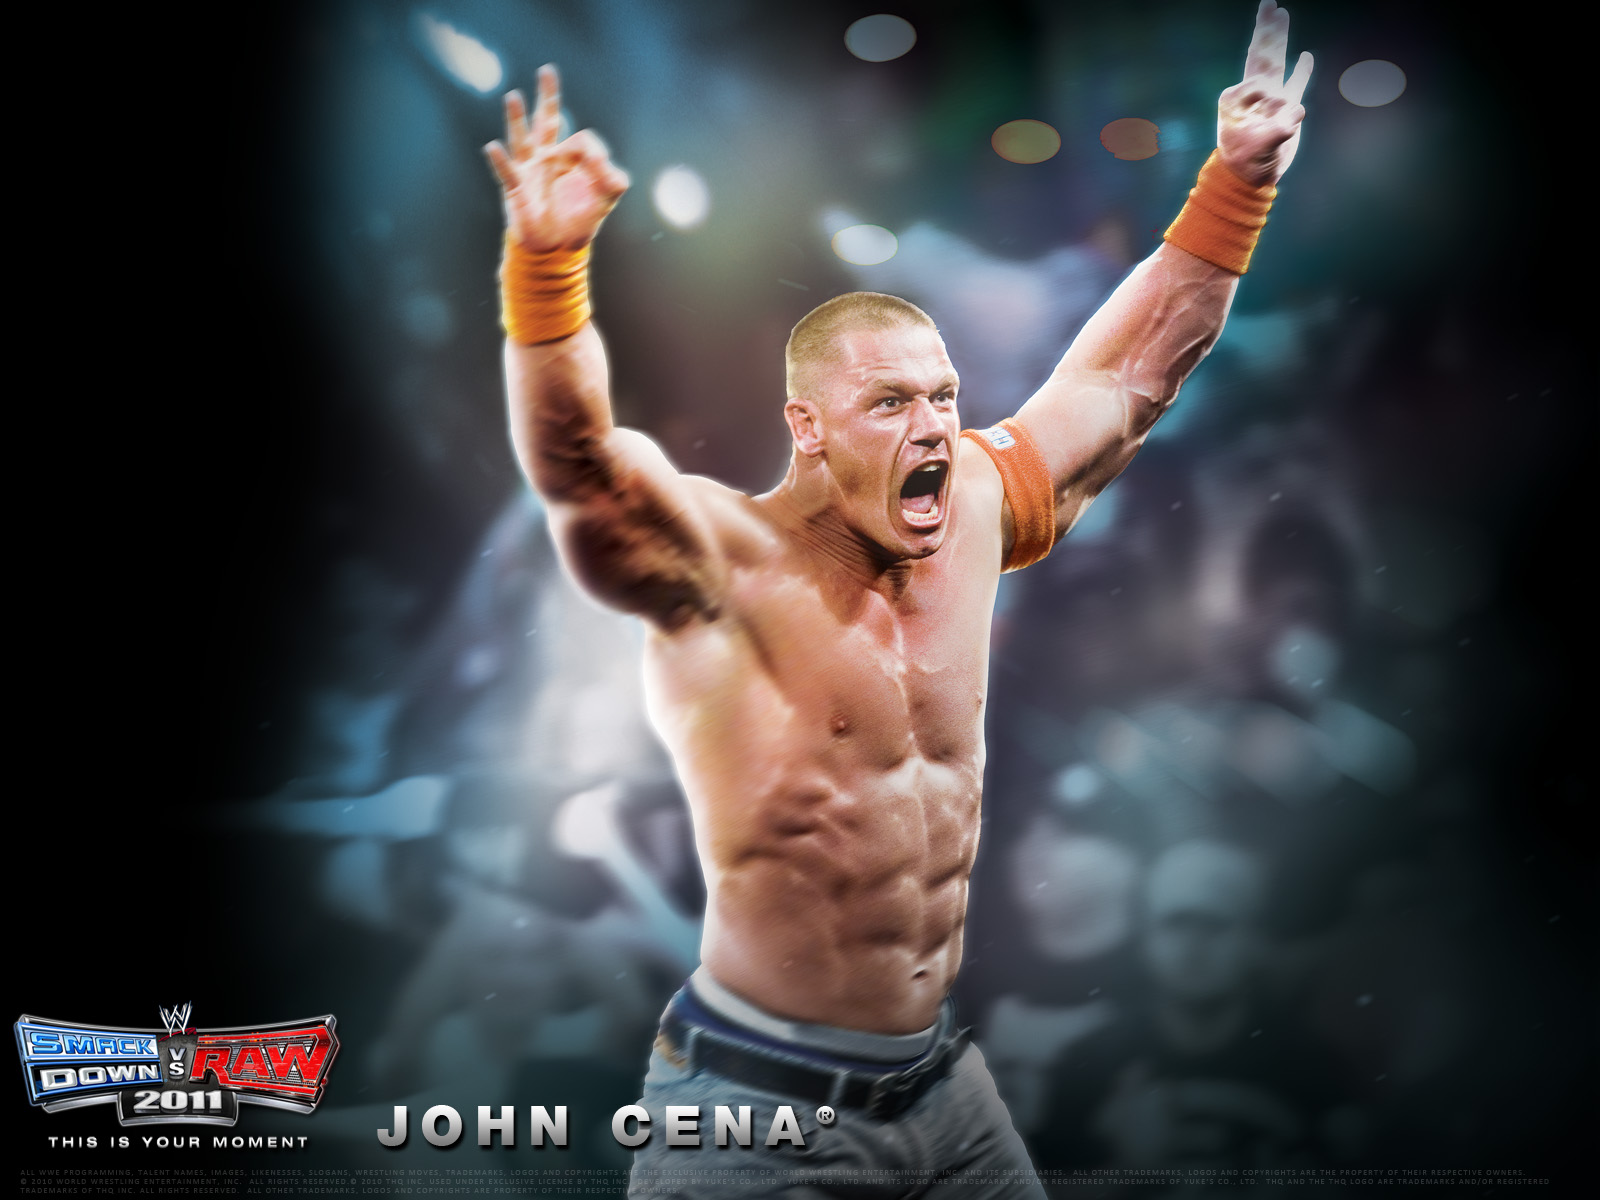 New Cool John Cena Wallpapers Soft Wallpapers 1600x1200